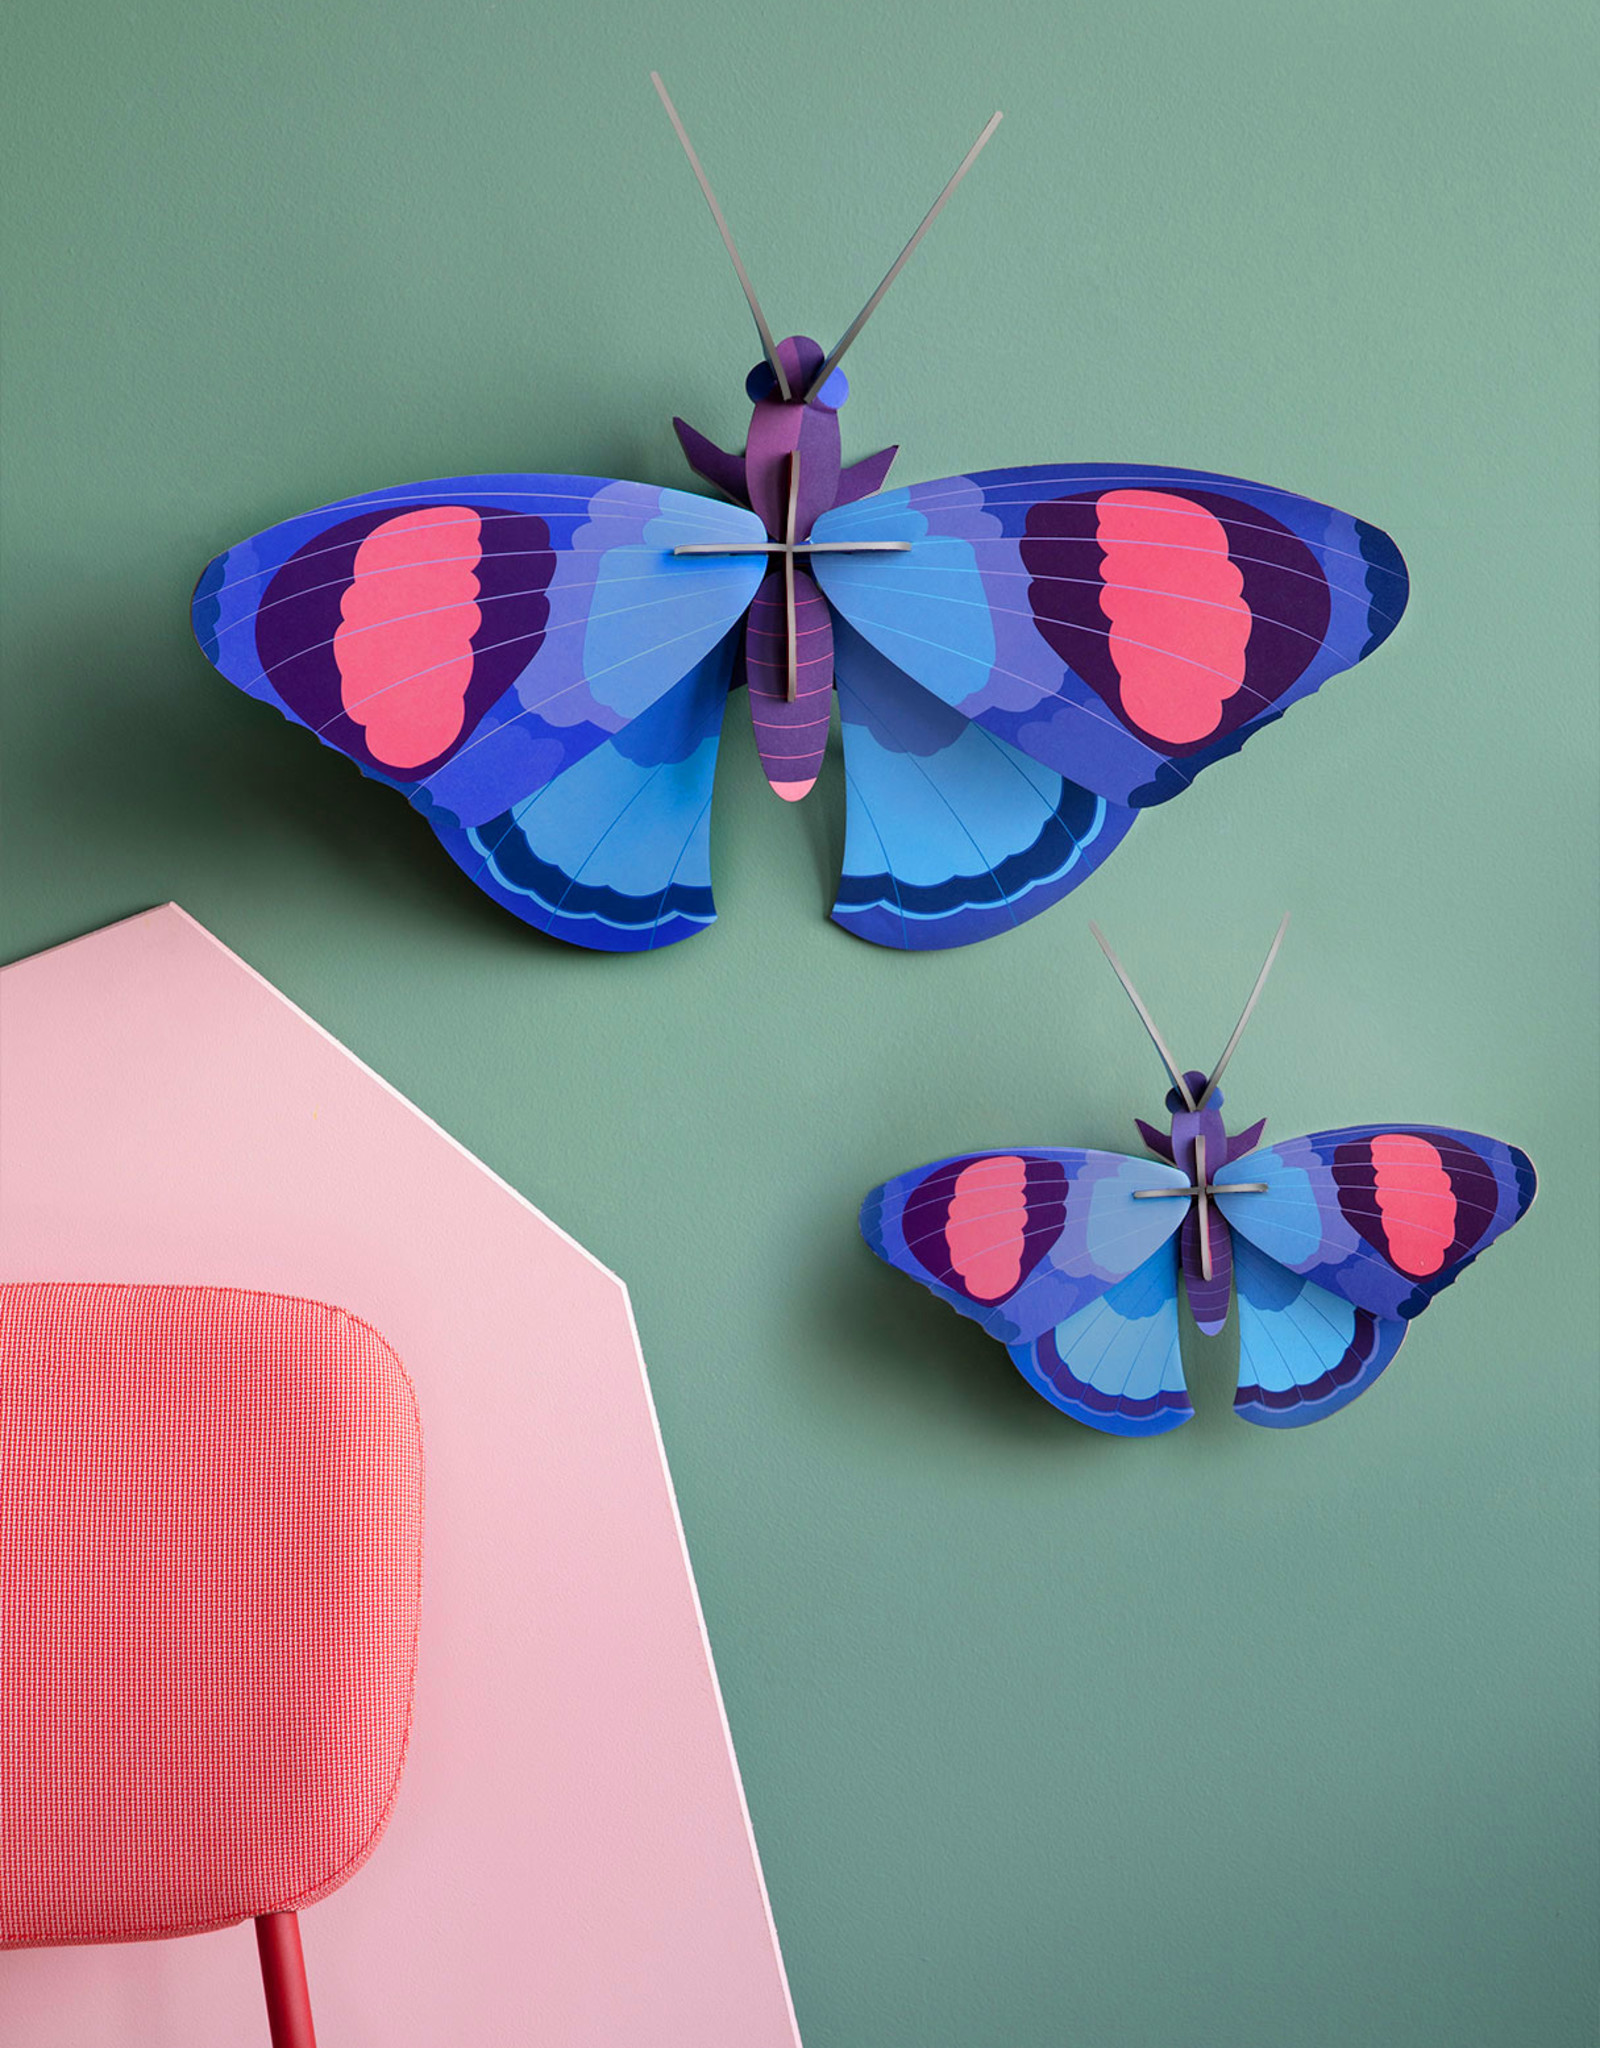 Studio Roof 3D Wall Decor - Deluxe Peacock Butterfly